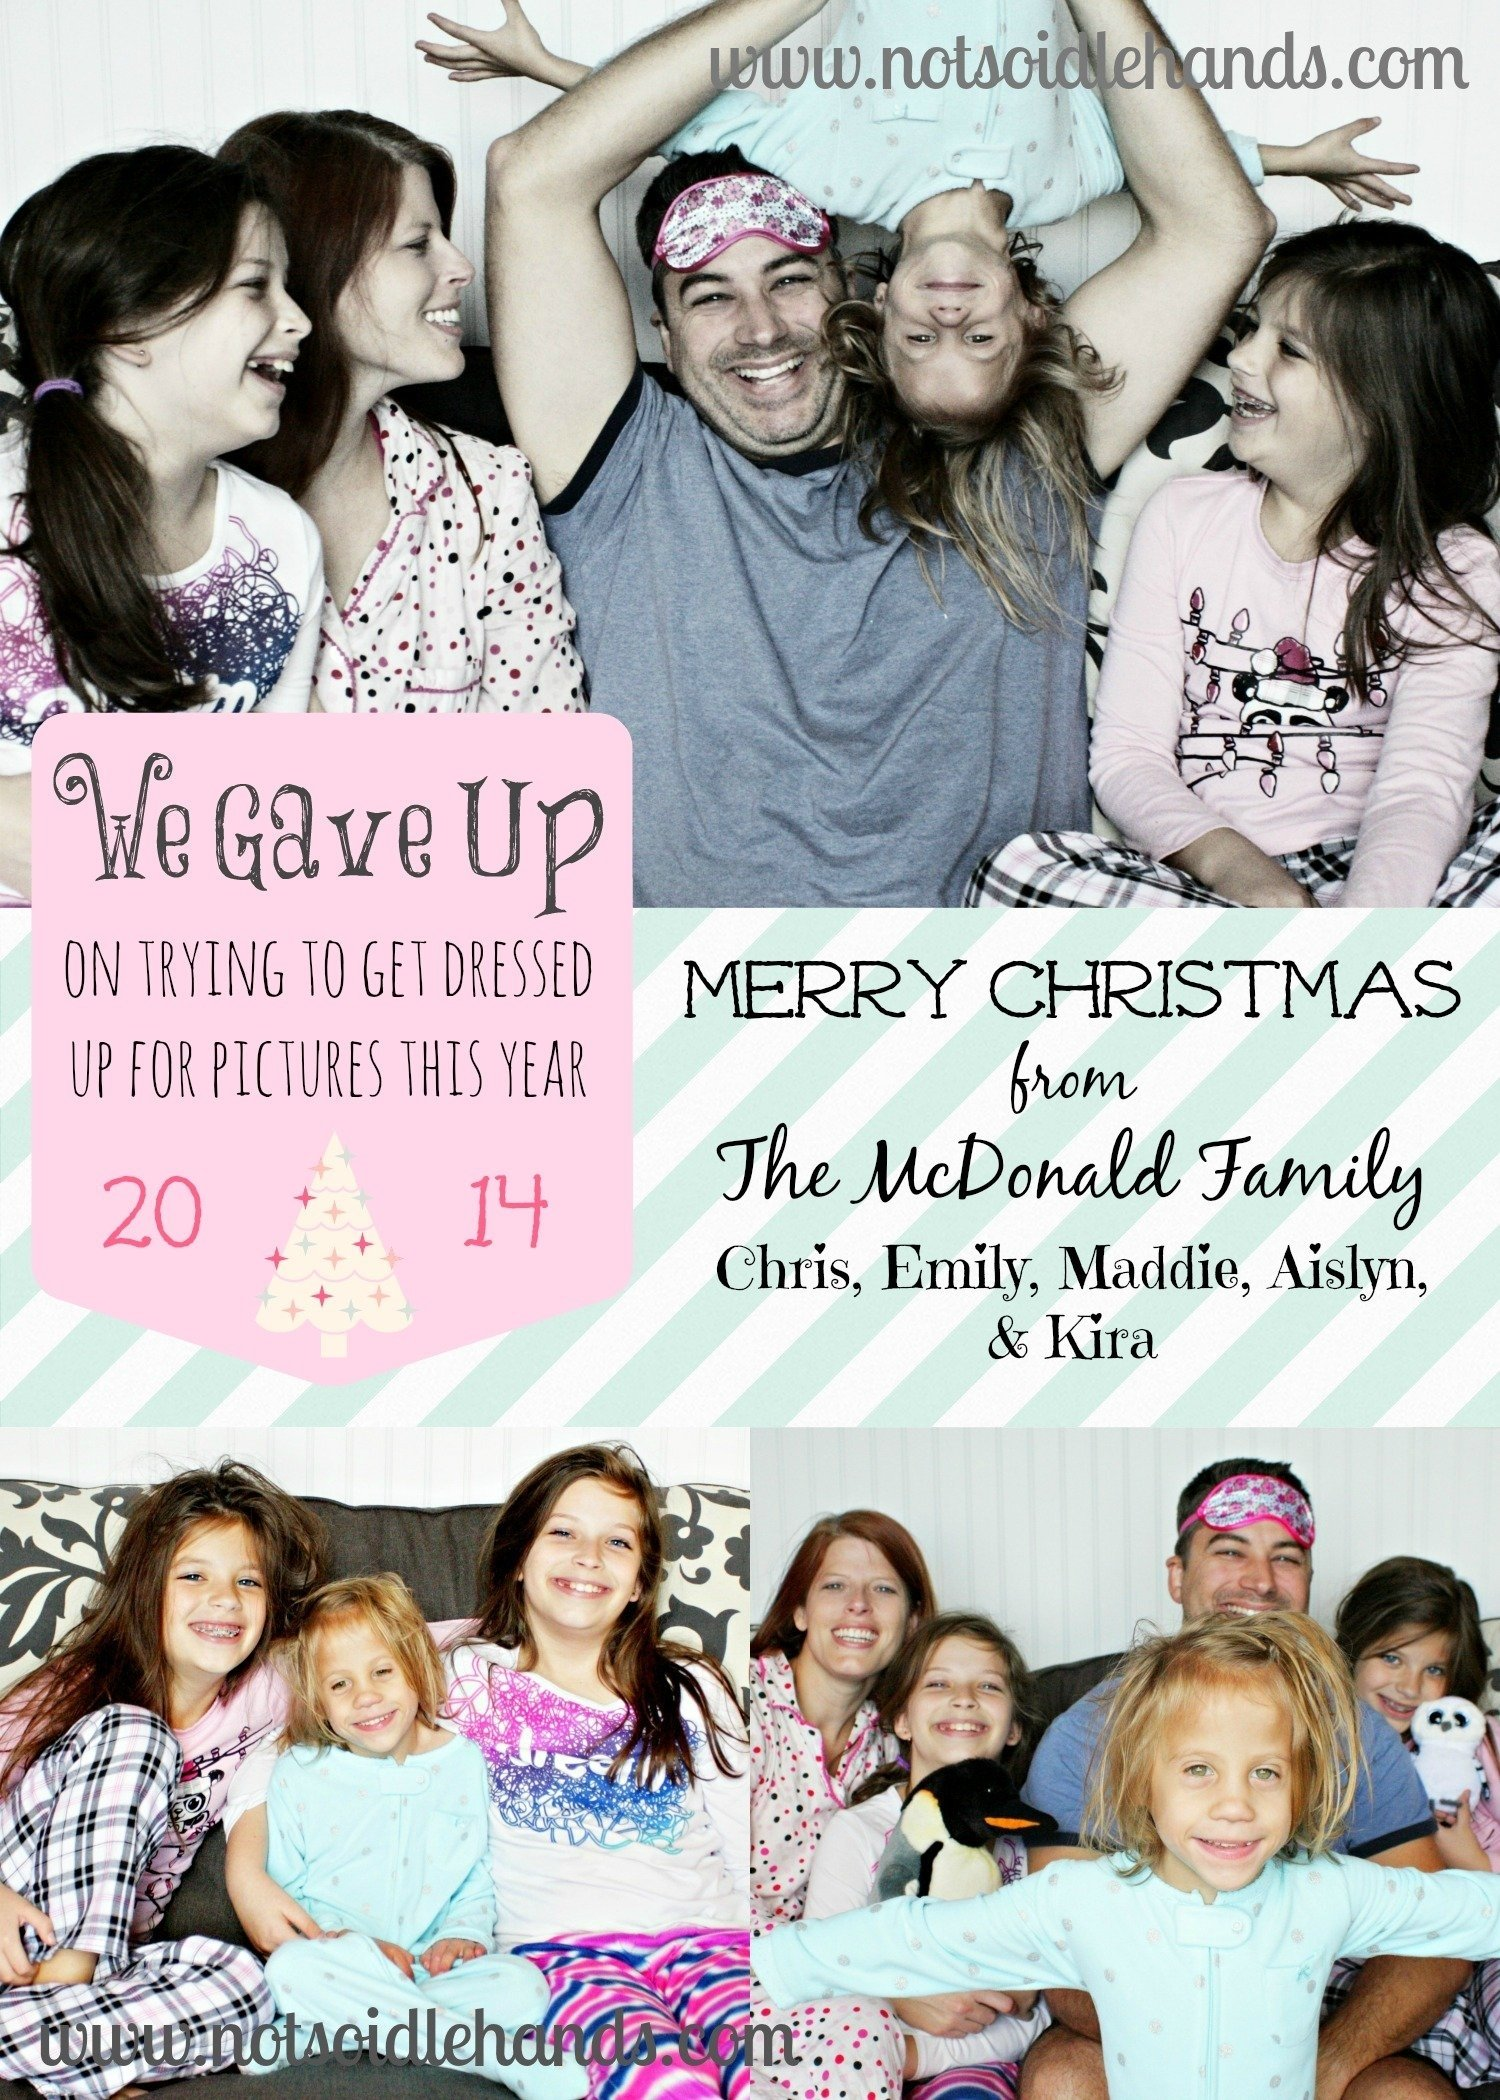 10 Great Funny Family Christmas Card Ideas 25 funny christmas card ideas family christmas card photos with 2020